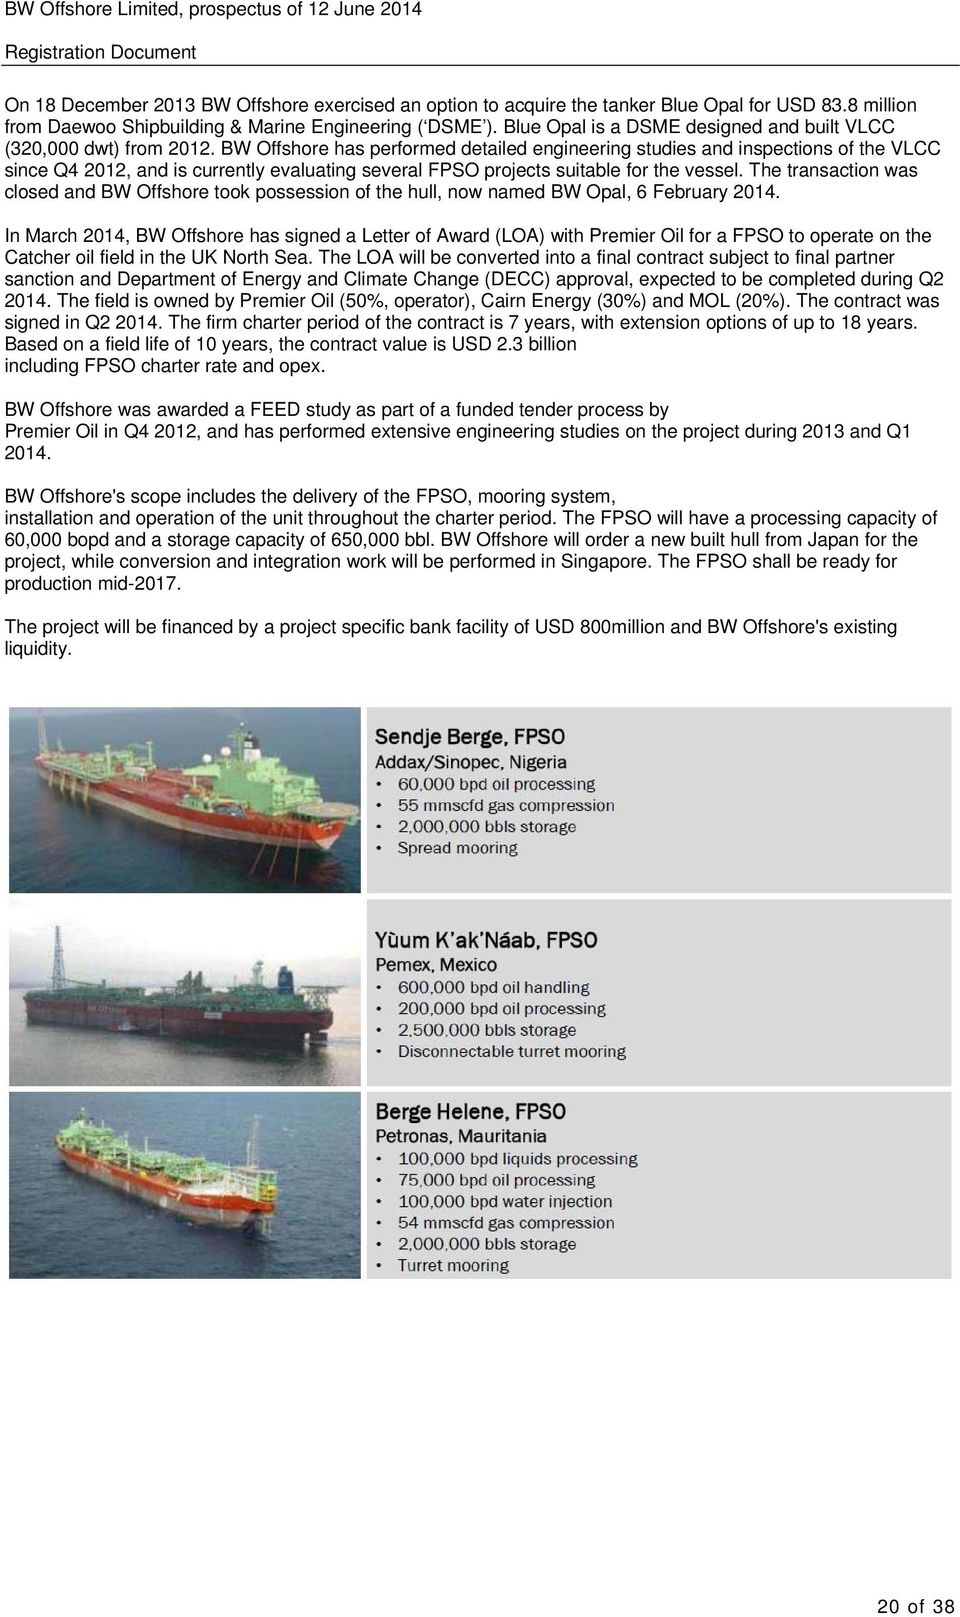 Prospectus  BW Offshore Limited  Registration Document  BW